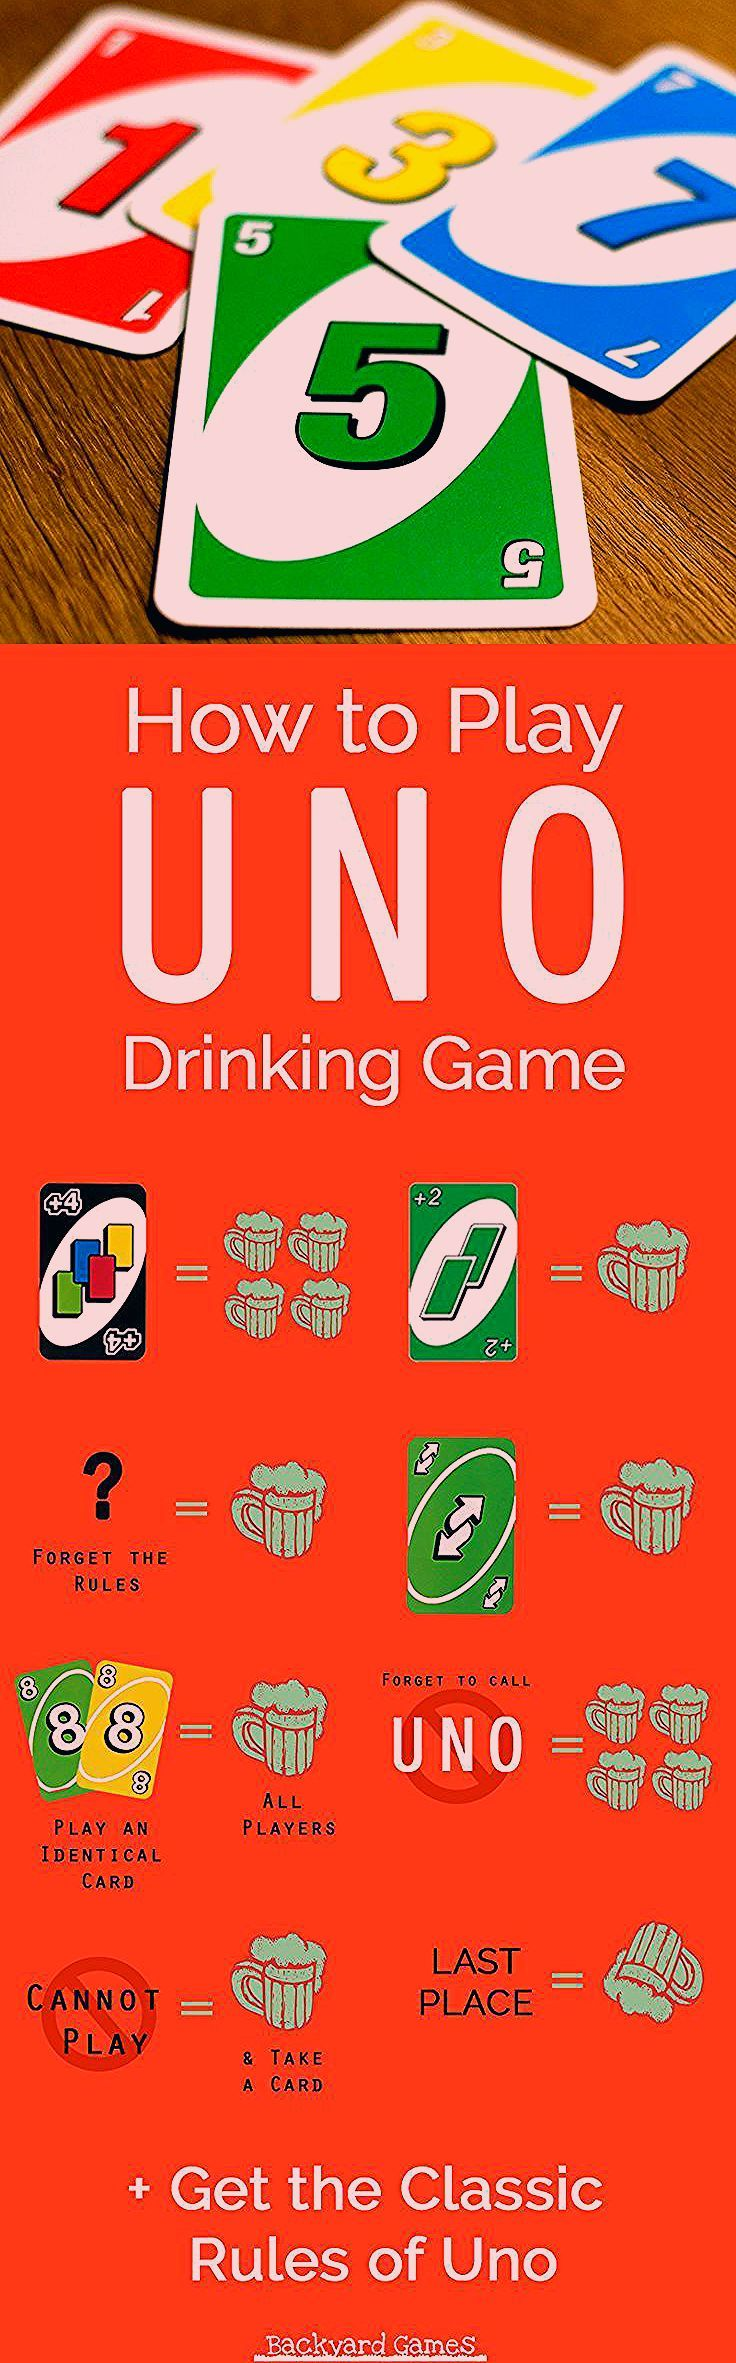 Photo of Drunk Uno: How To Play Uno Drinking Card Games [+Rules]